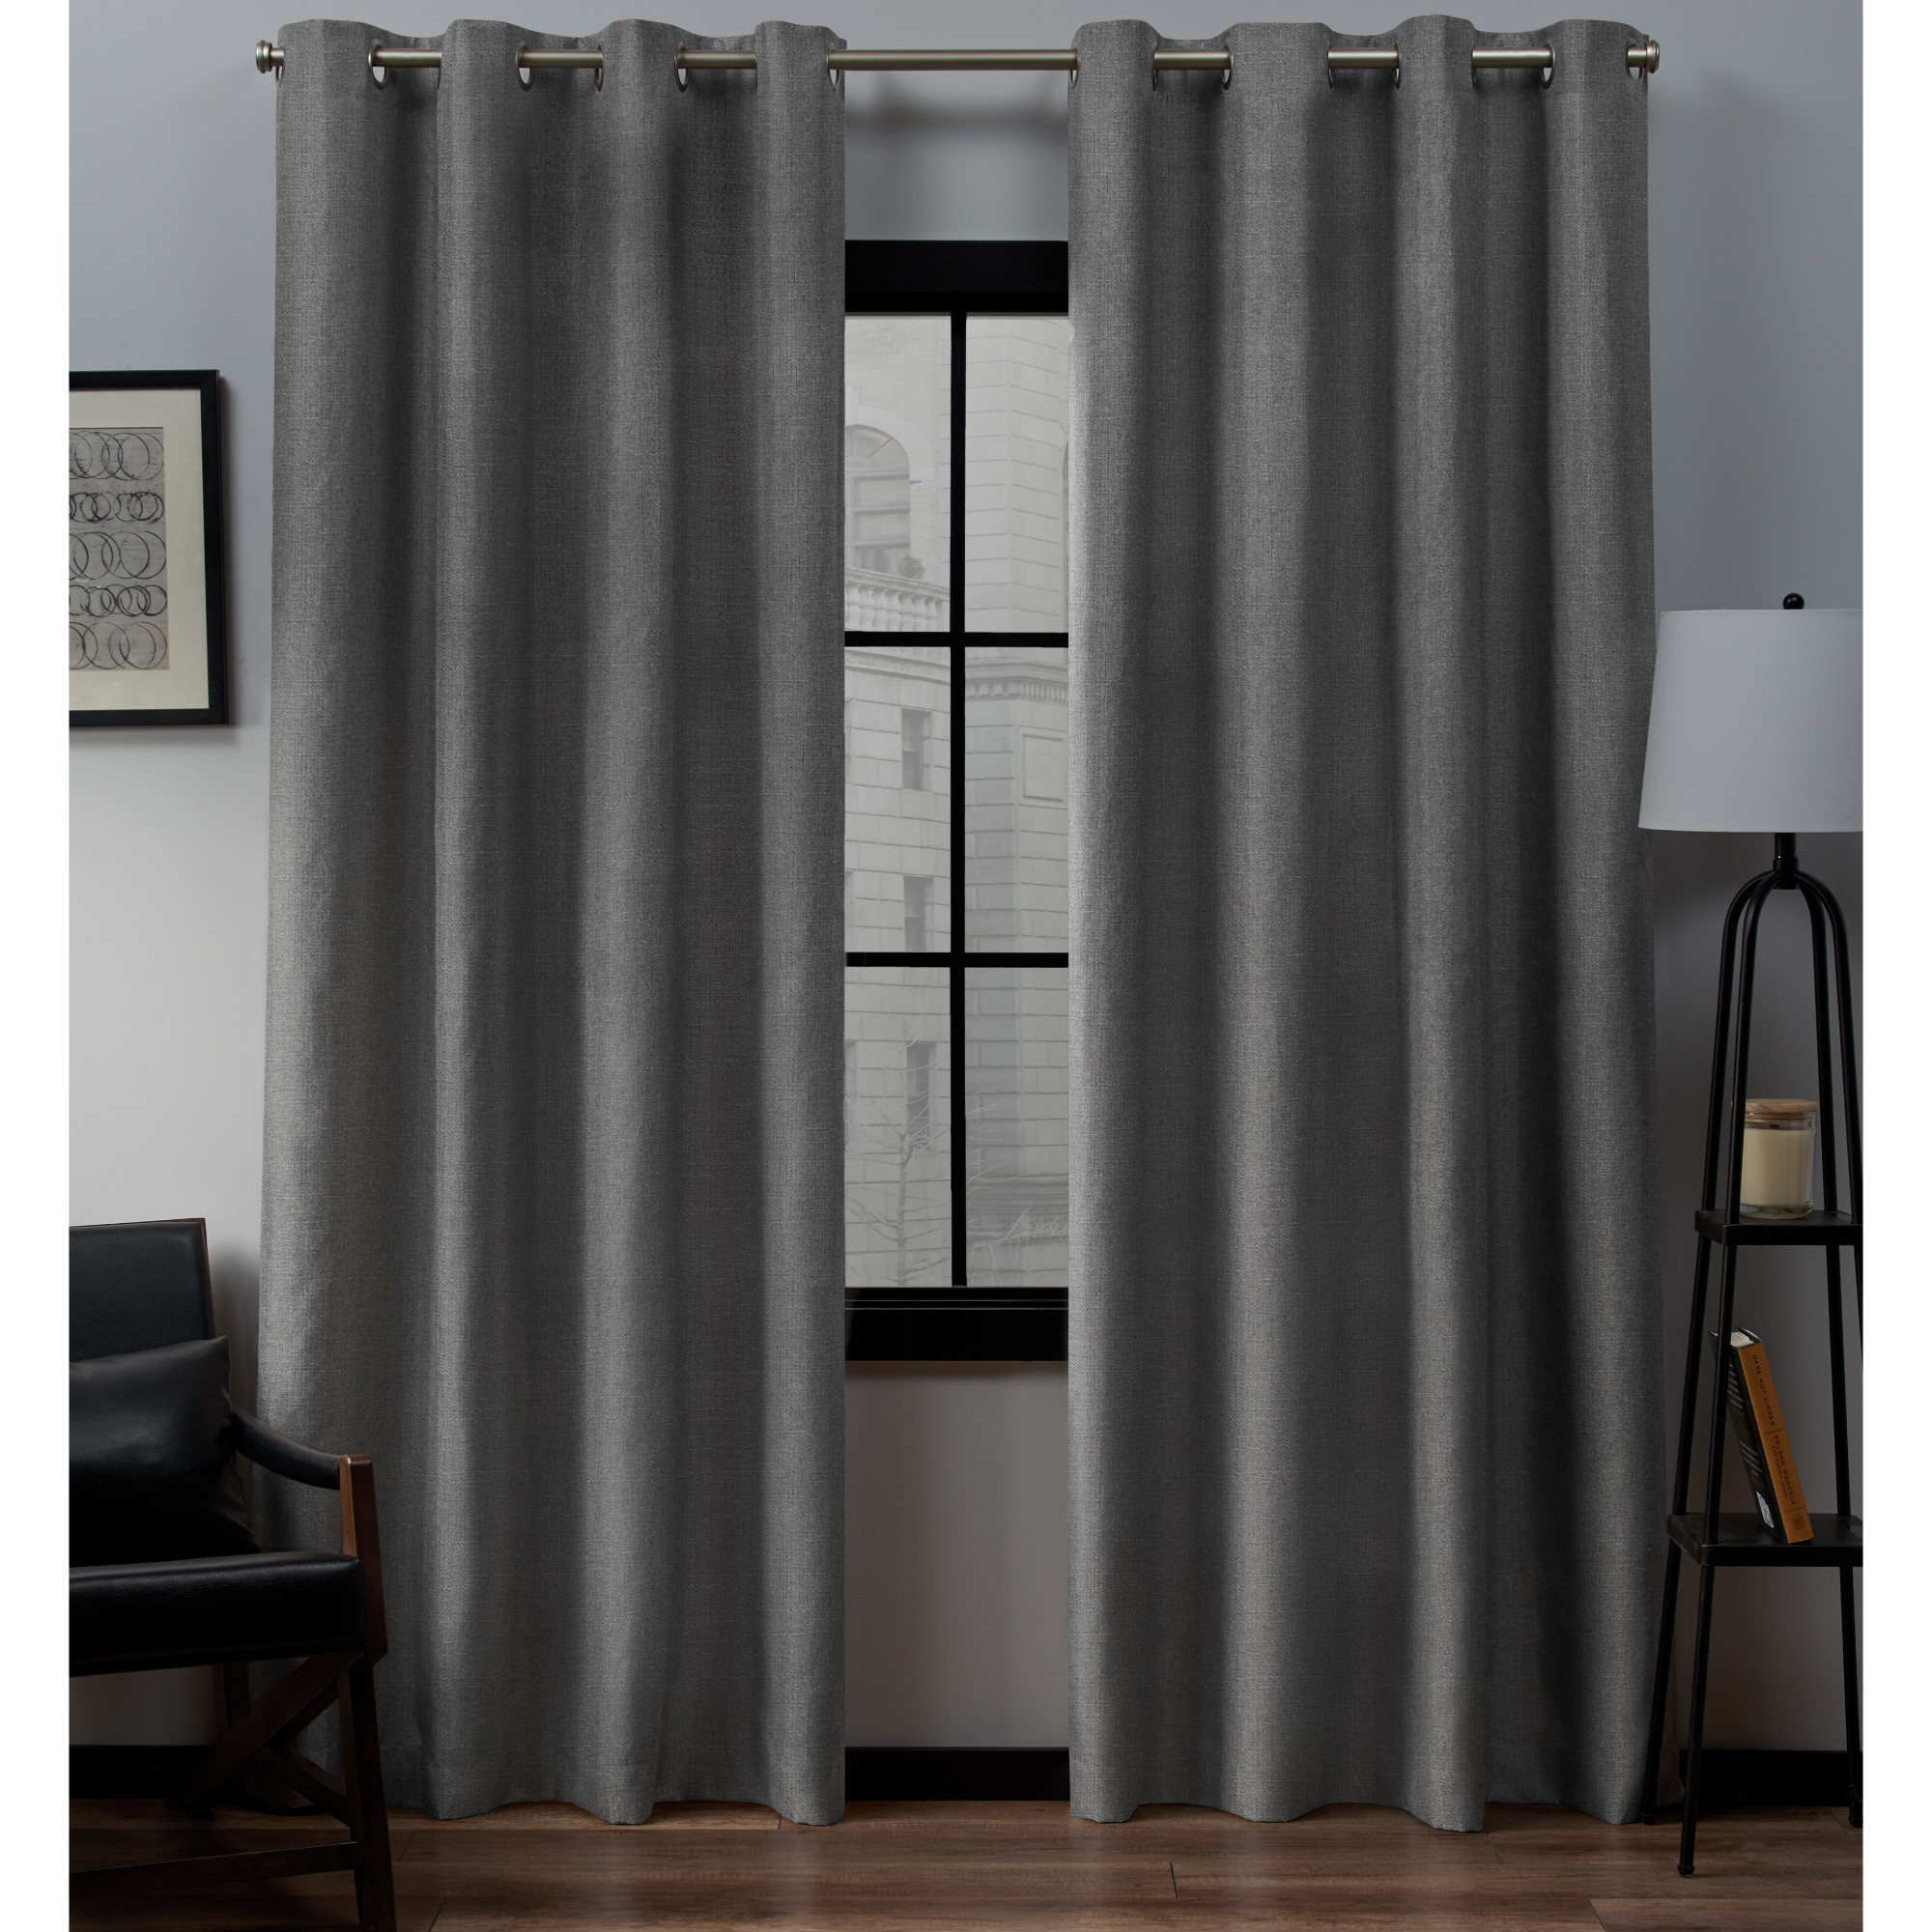 Exclusive Home Curtains 2 Pack Loha Linen Grommet Top Curtain Panels